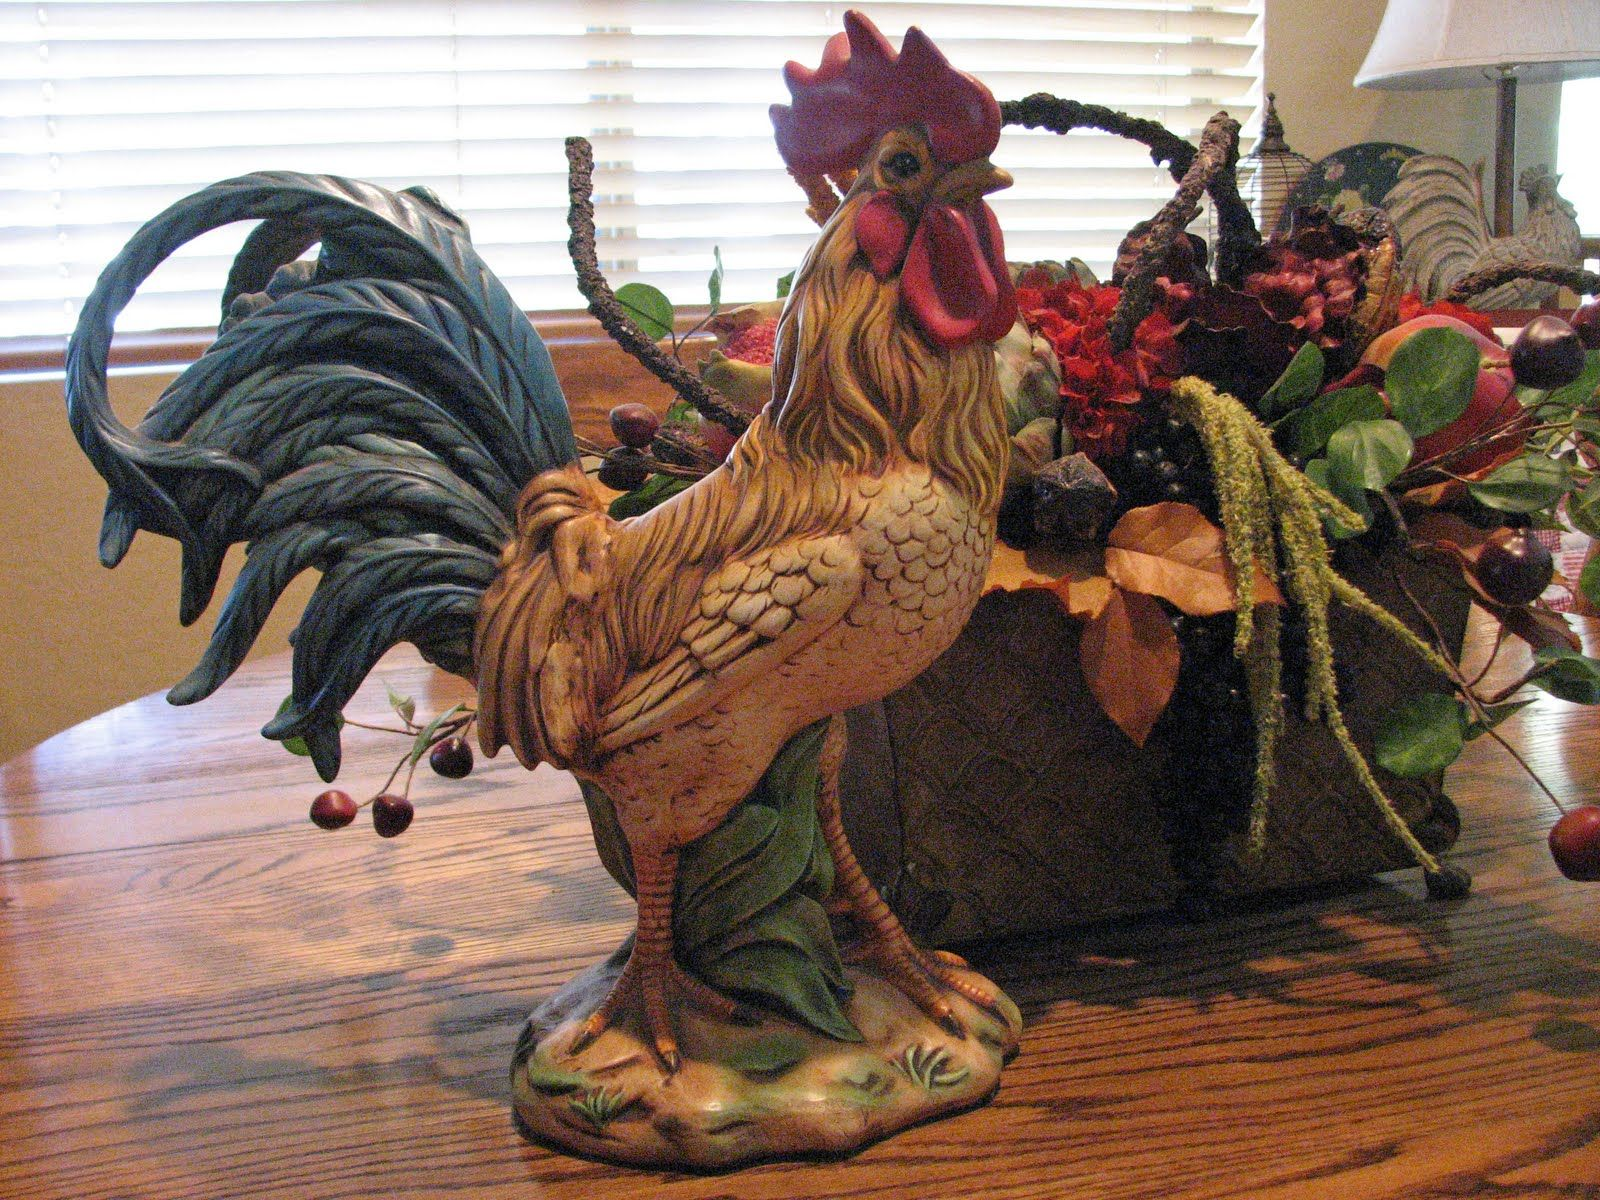 Ceramic rooster I bought one very much like this one at a great